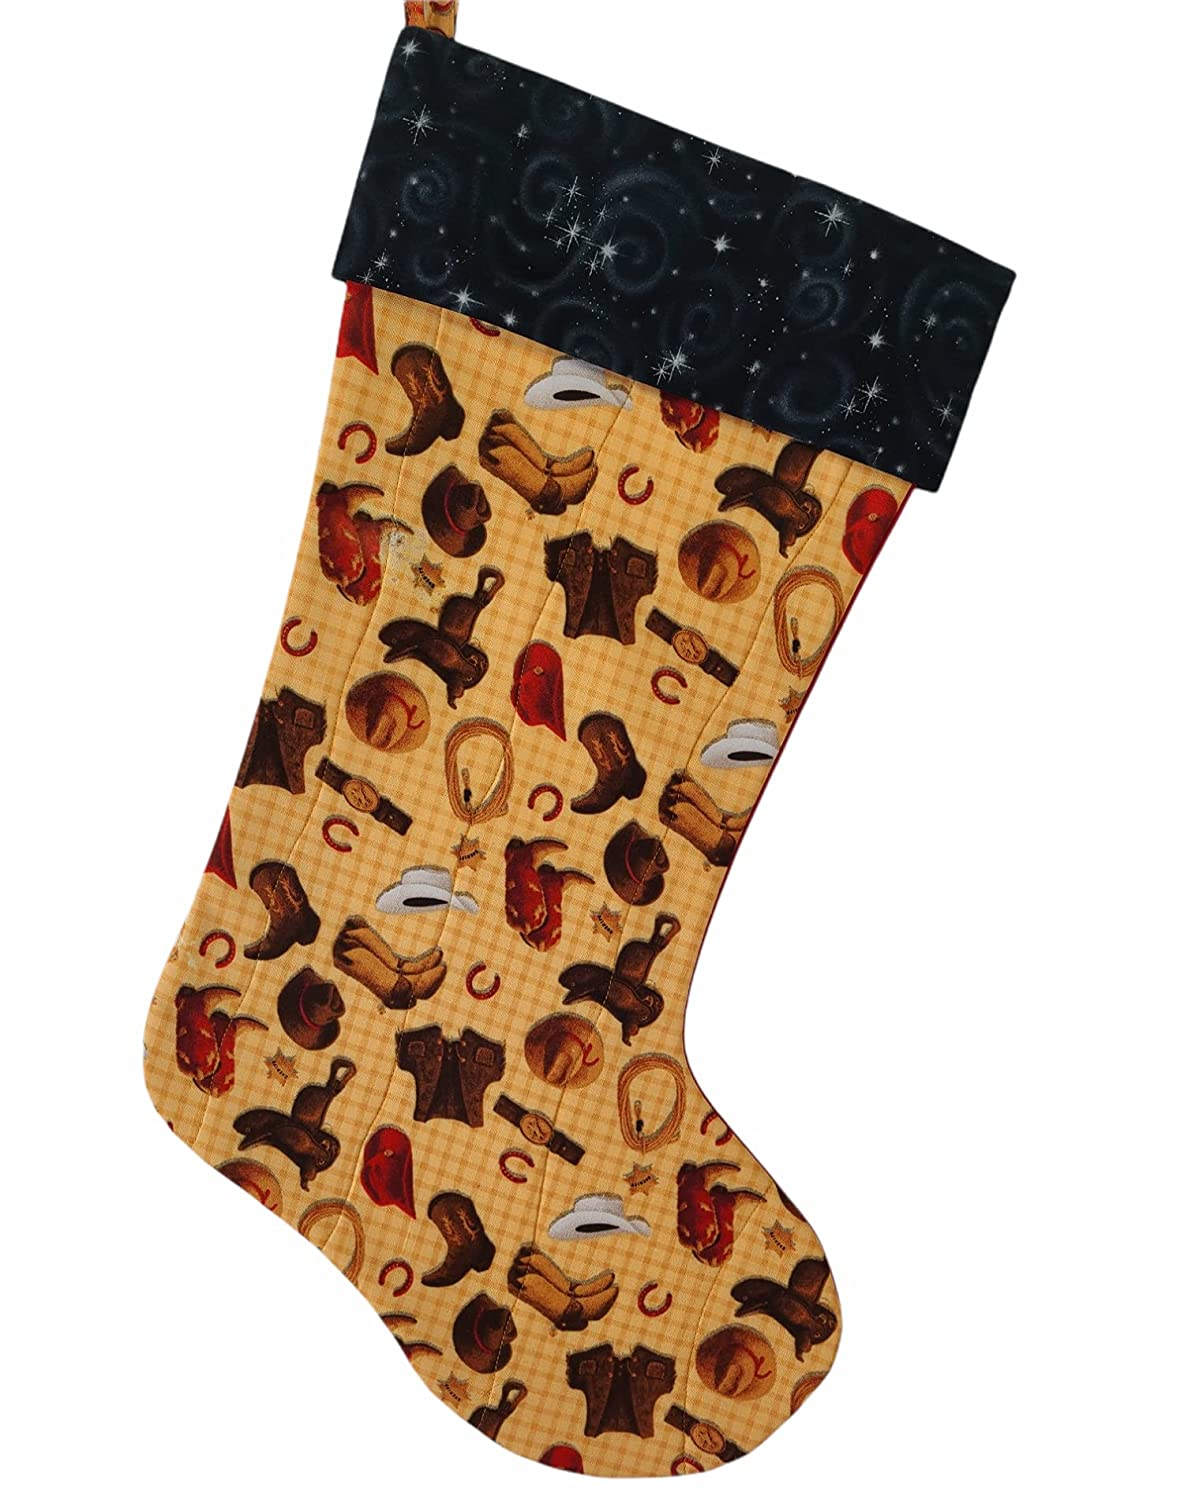 Cowboy Collage Quilted Christmas Super beauty product Max 87% OFF restock quality top Stocking